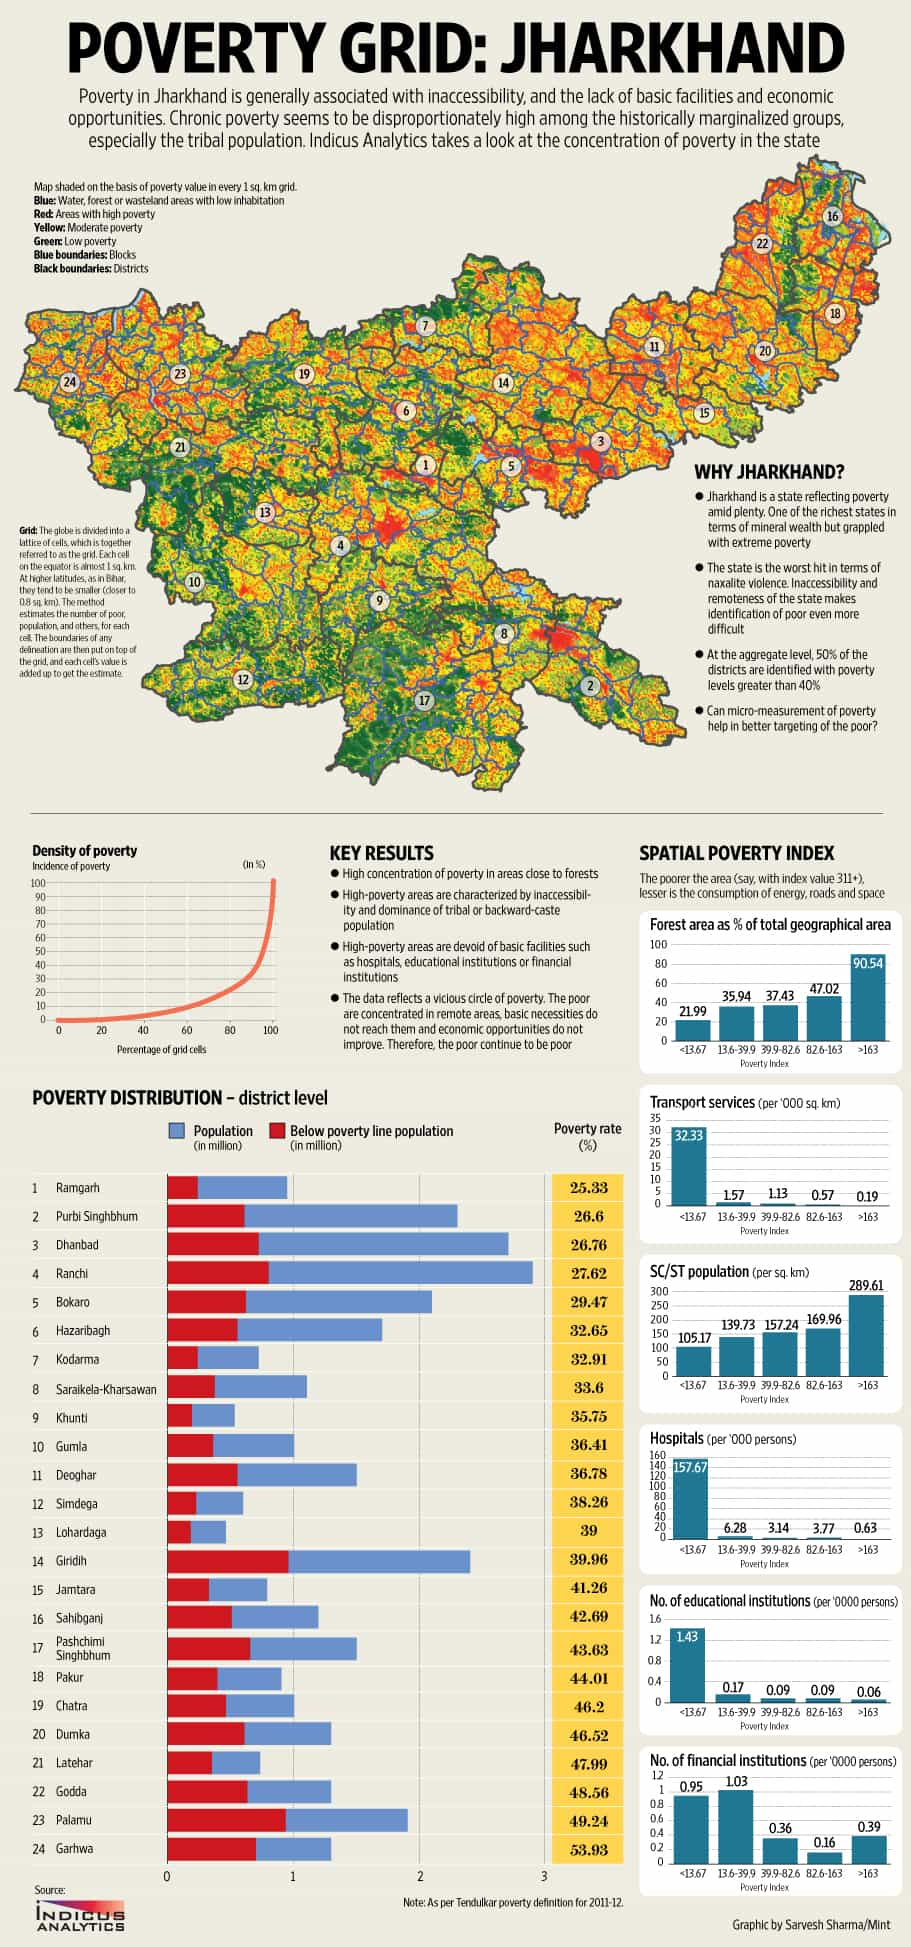 Spatial poverty in Jharkhand on maharashtra map, cyber world map, bangladesh map, indiana state map, u.s. regions map, indiana county map, tonga map, french regions map, brazil map, saudi arabia map, illinois-indiana map, iran map, india map, state capitals map, european nations map, tamil nadu map, cape of good hope map, andhra pradesh map, indian states and capitals, great britain map,